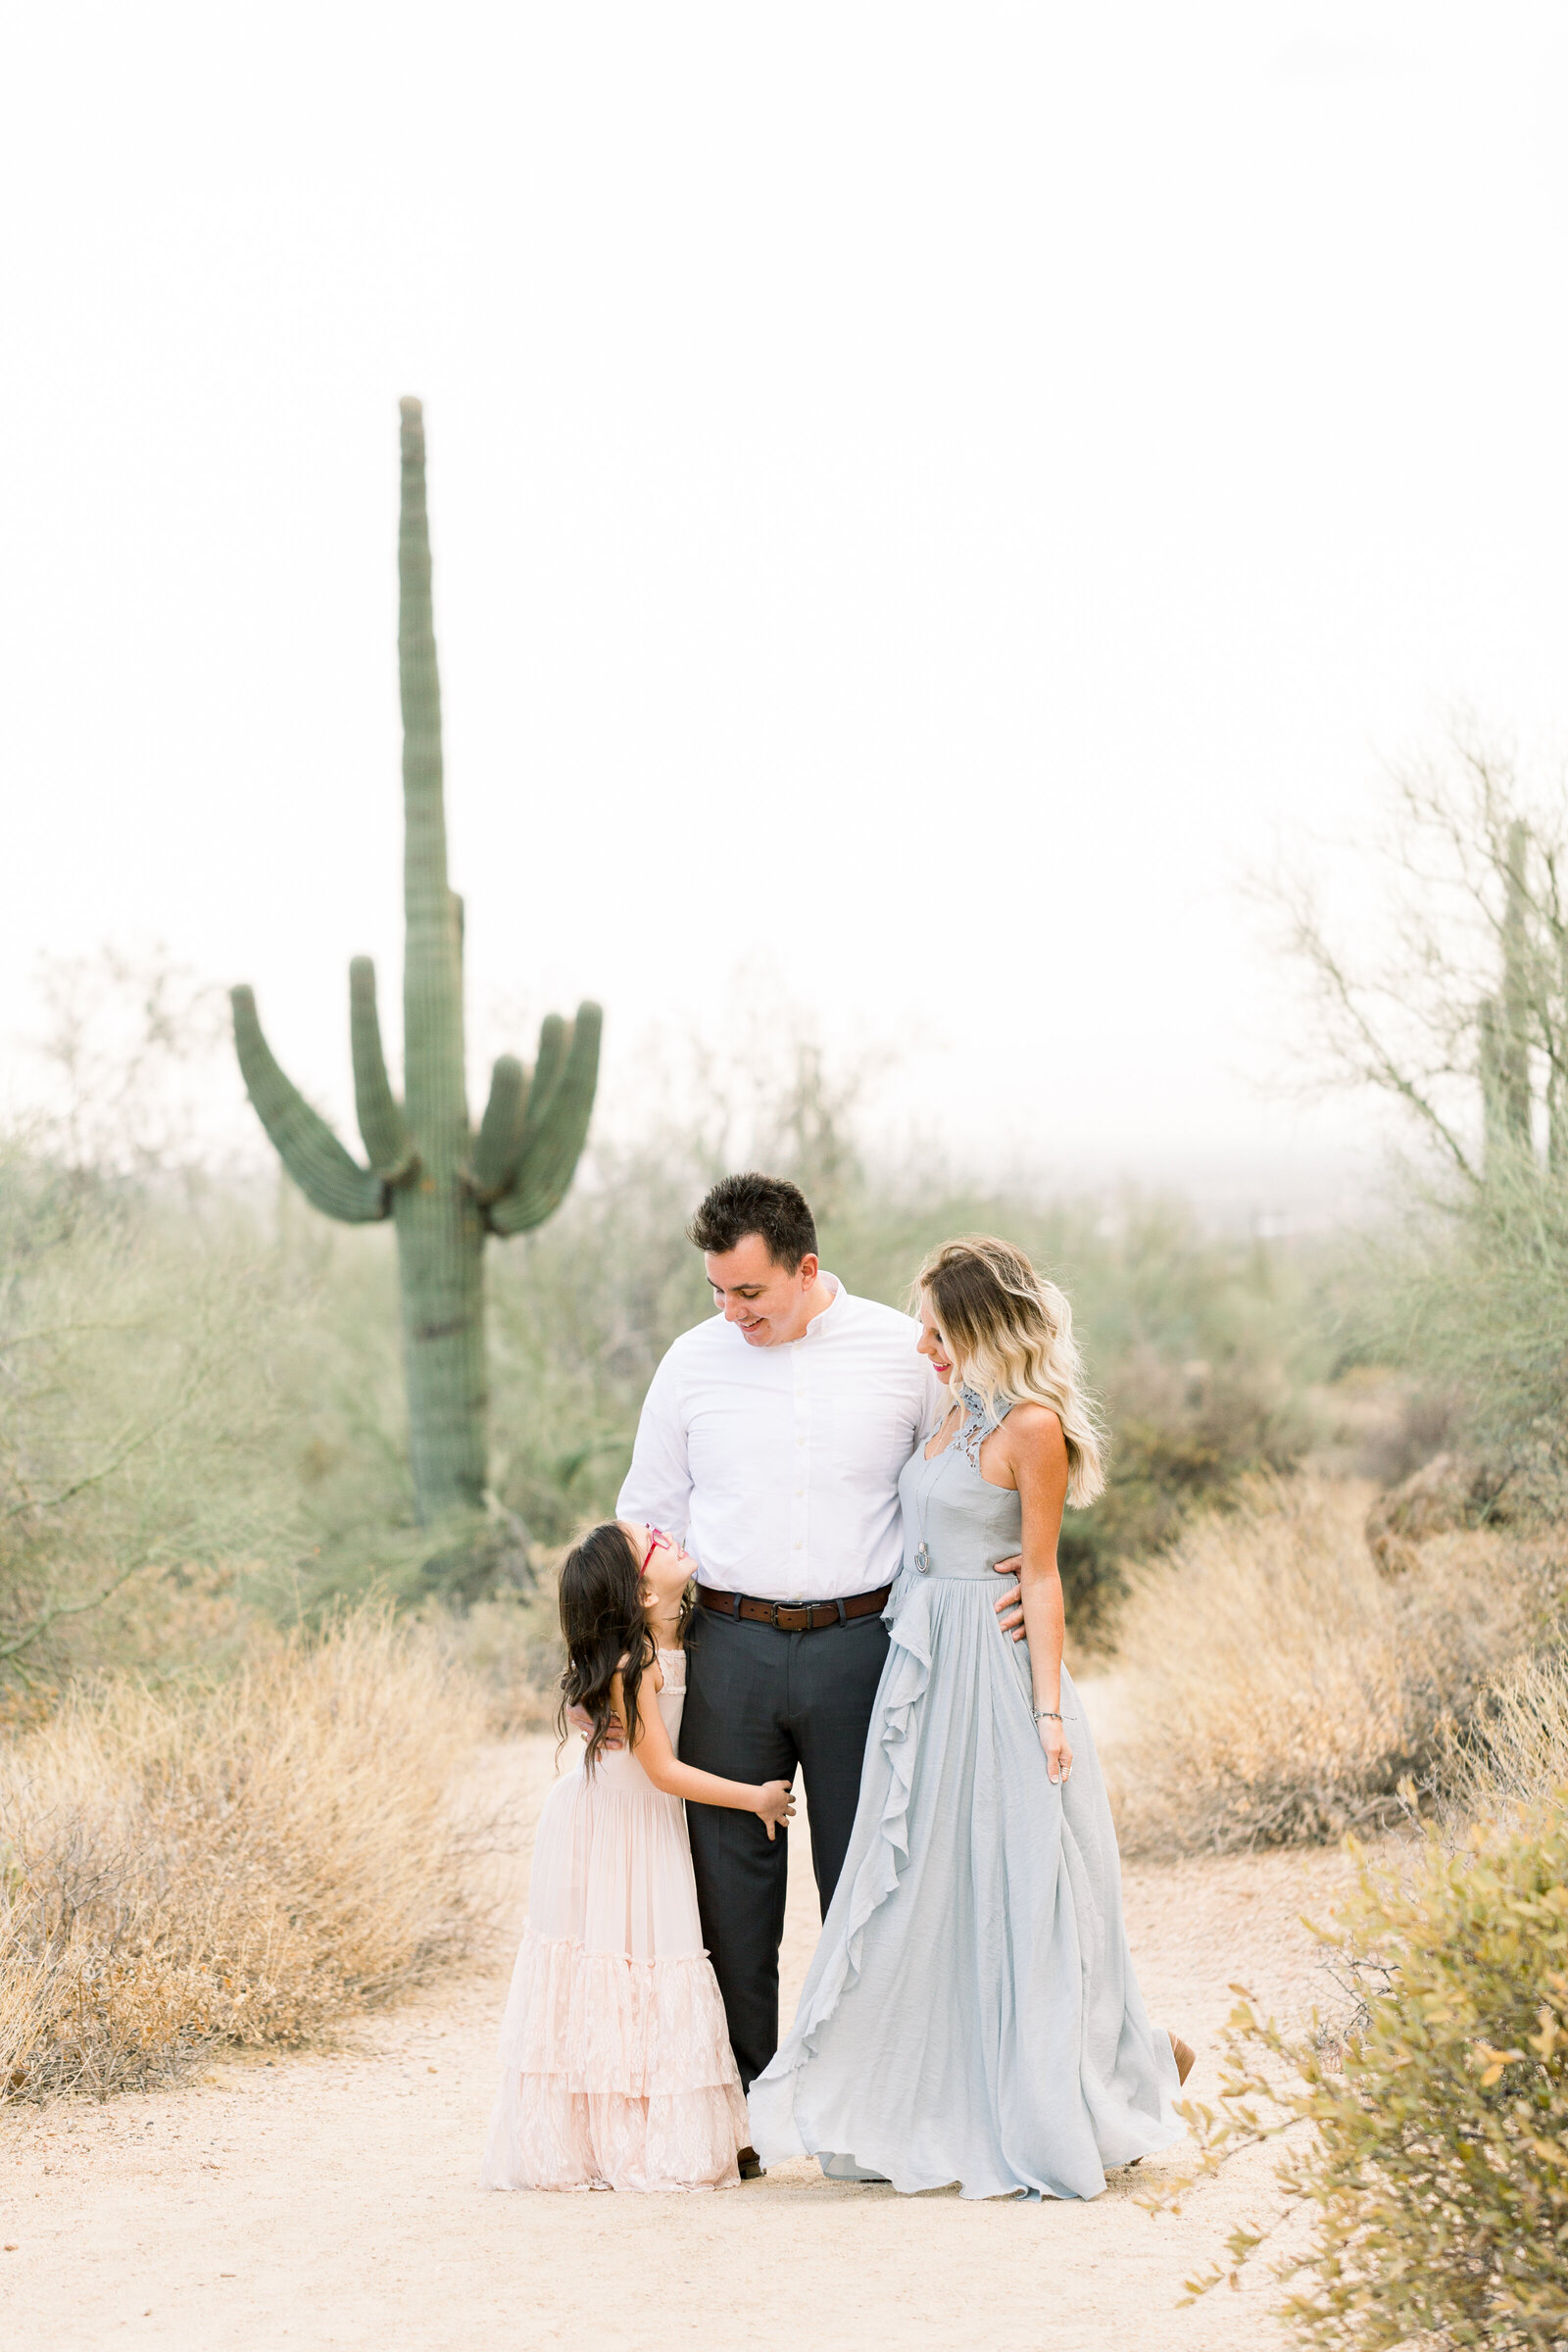 Aly-Kirk-Photo-Mesa-Family-Photographer-Bednarek-0003